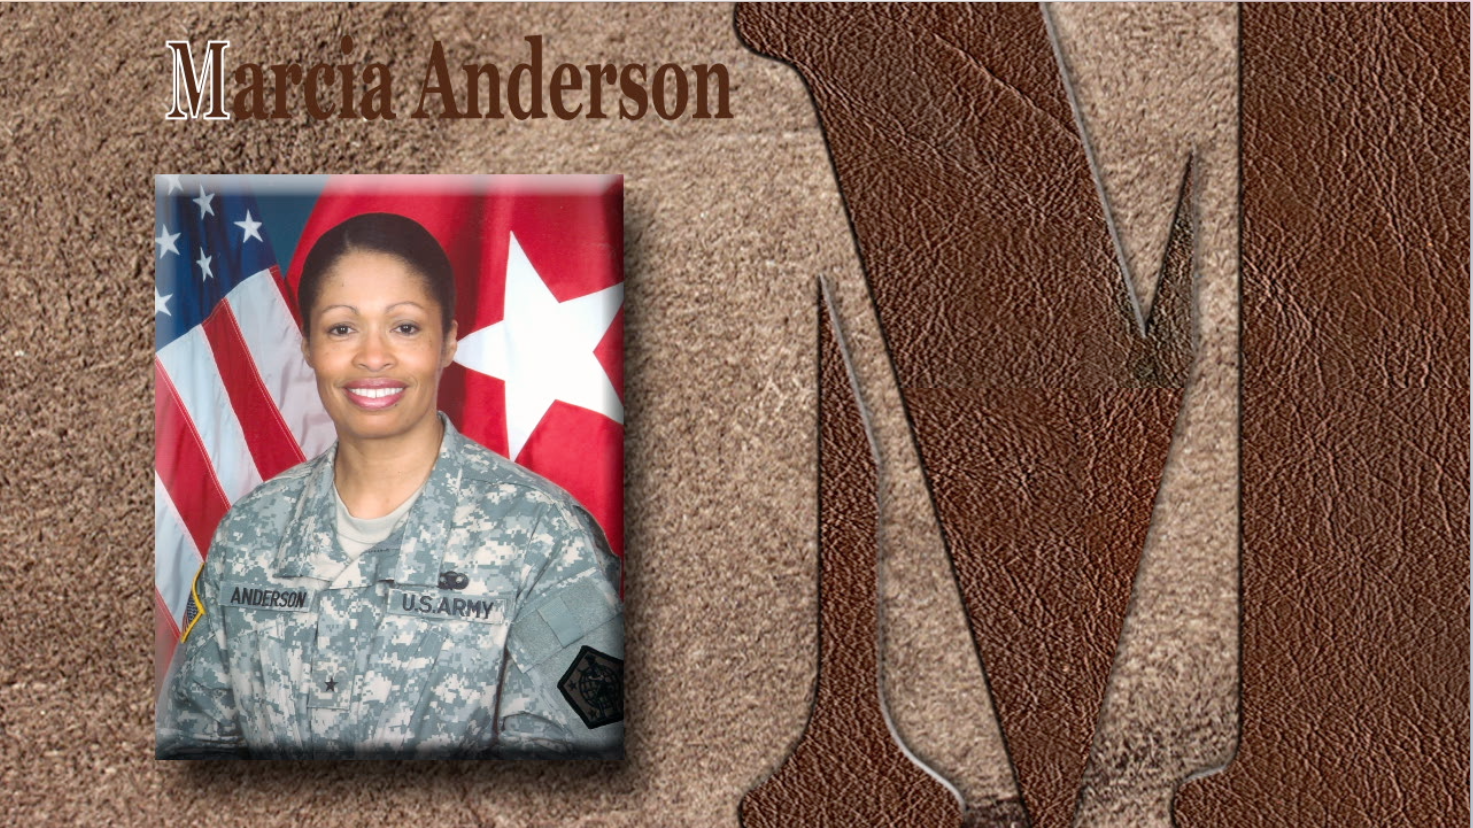 Marcia Carol Martin Anderson (née Mahan, born 1957) was the first African-American woman to become a major general in the United States Army Reserve.